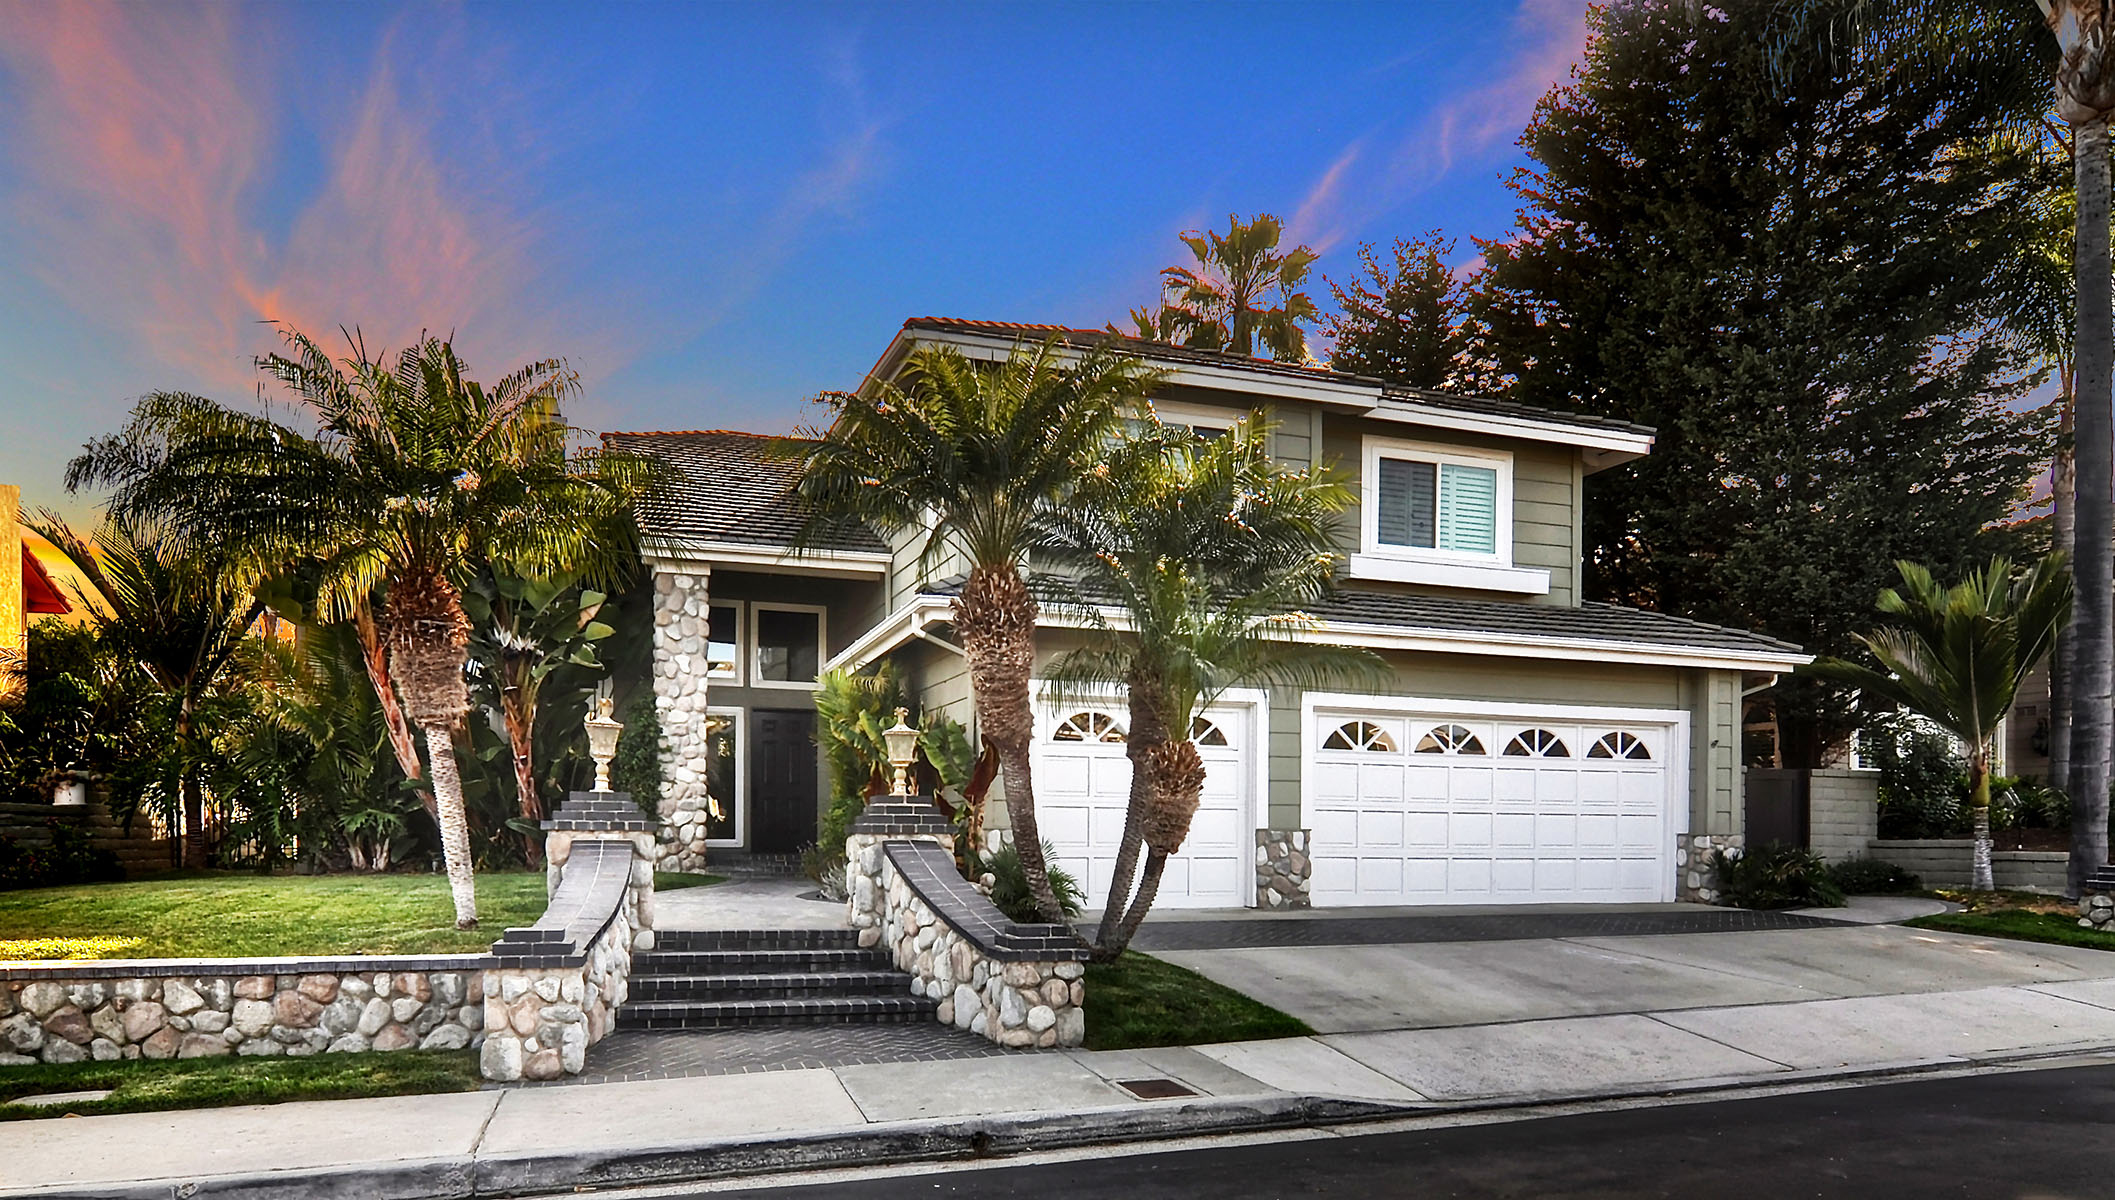 Single Family Home for Sale at San Clemente 12 Via Calandria San Clemente, California 92672 United States